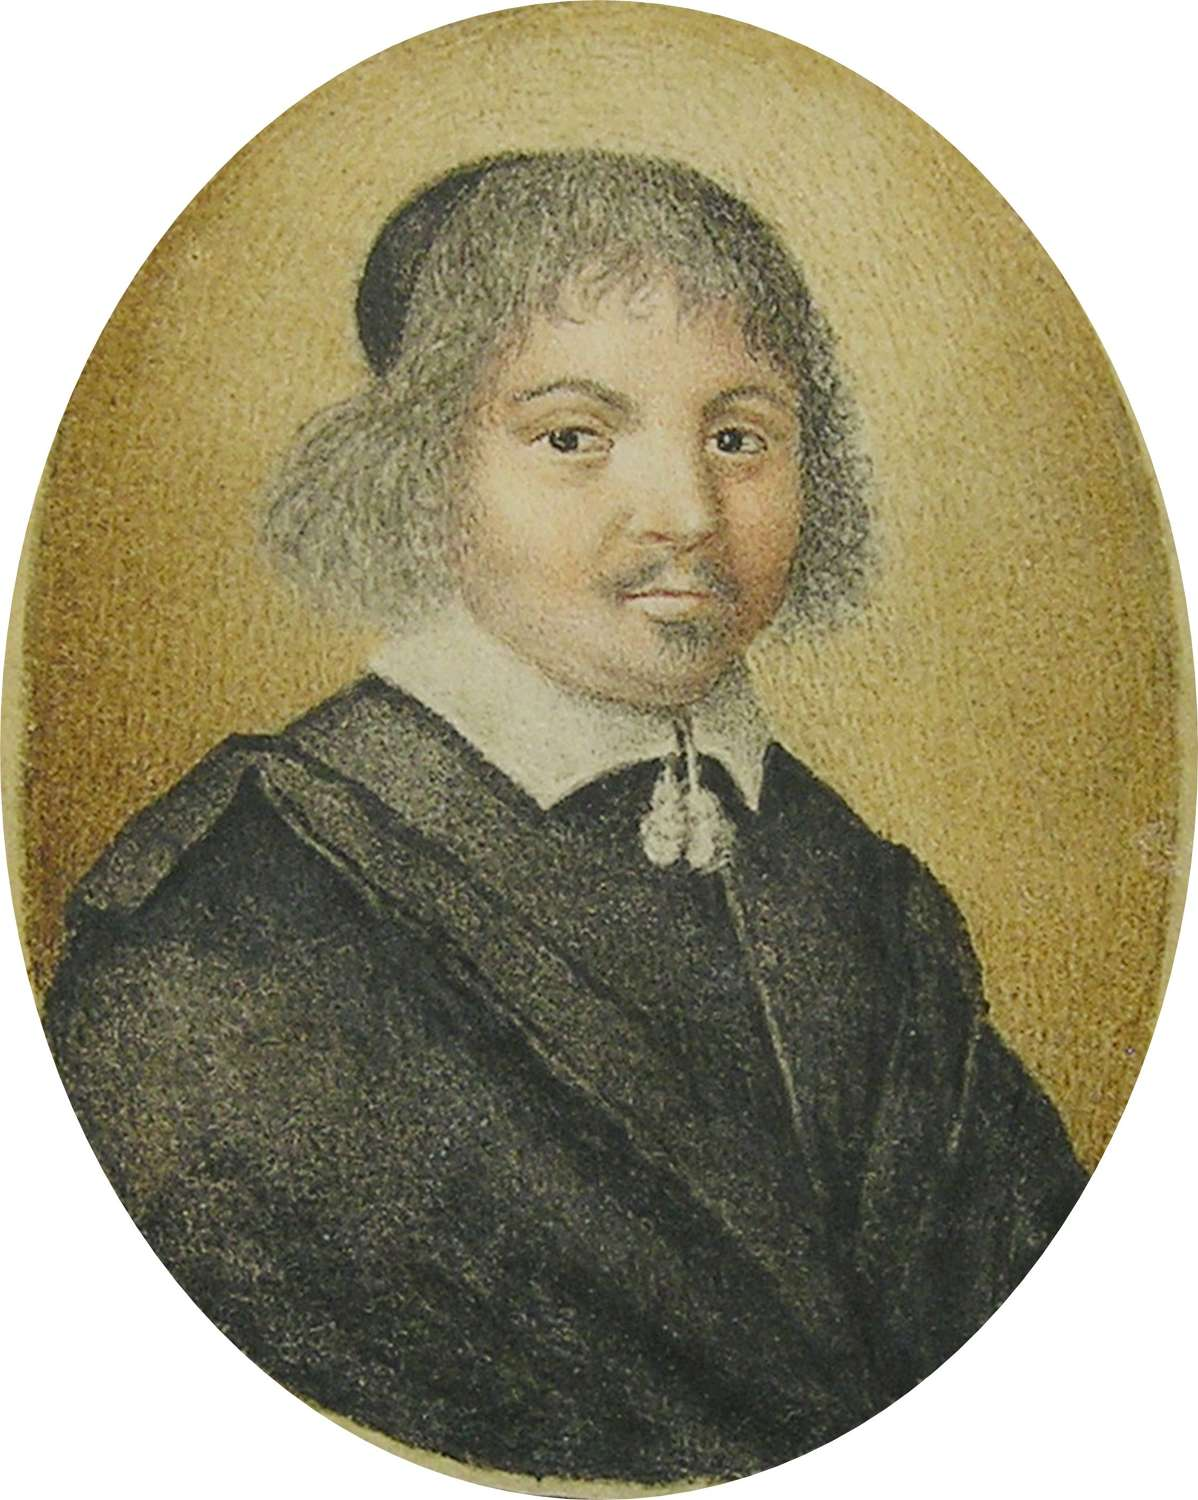 Portrait miniature of a scholar, physician, or doctor Thomas Flatman?